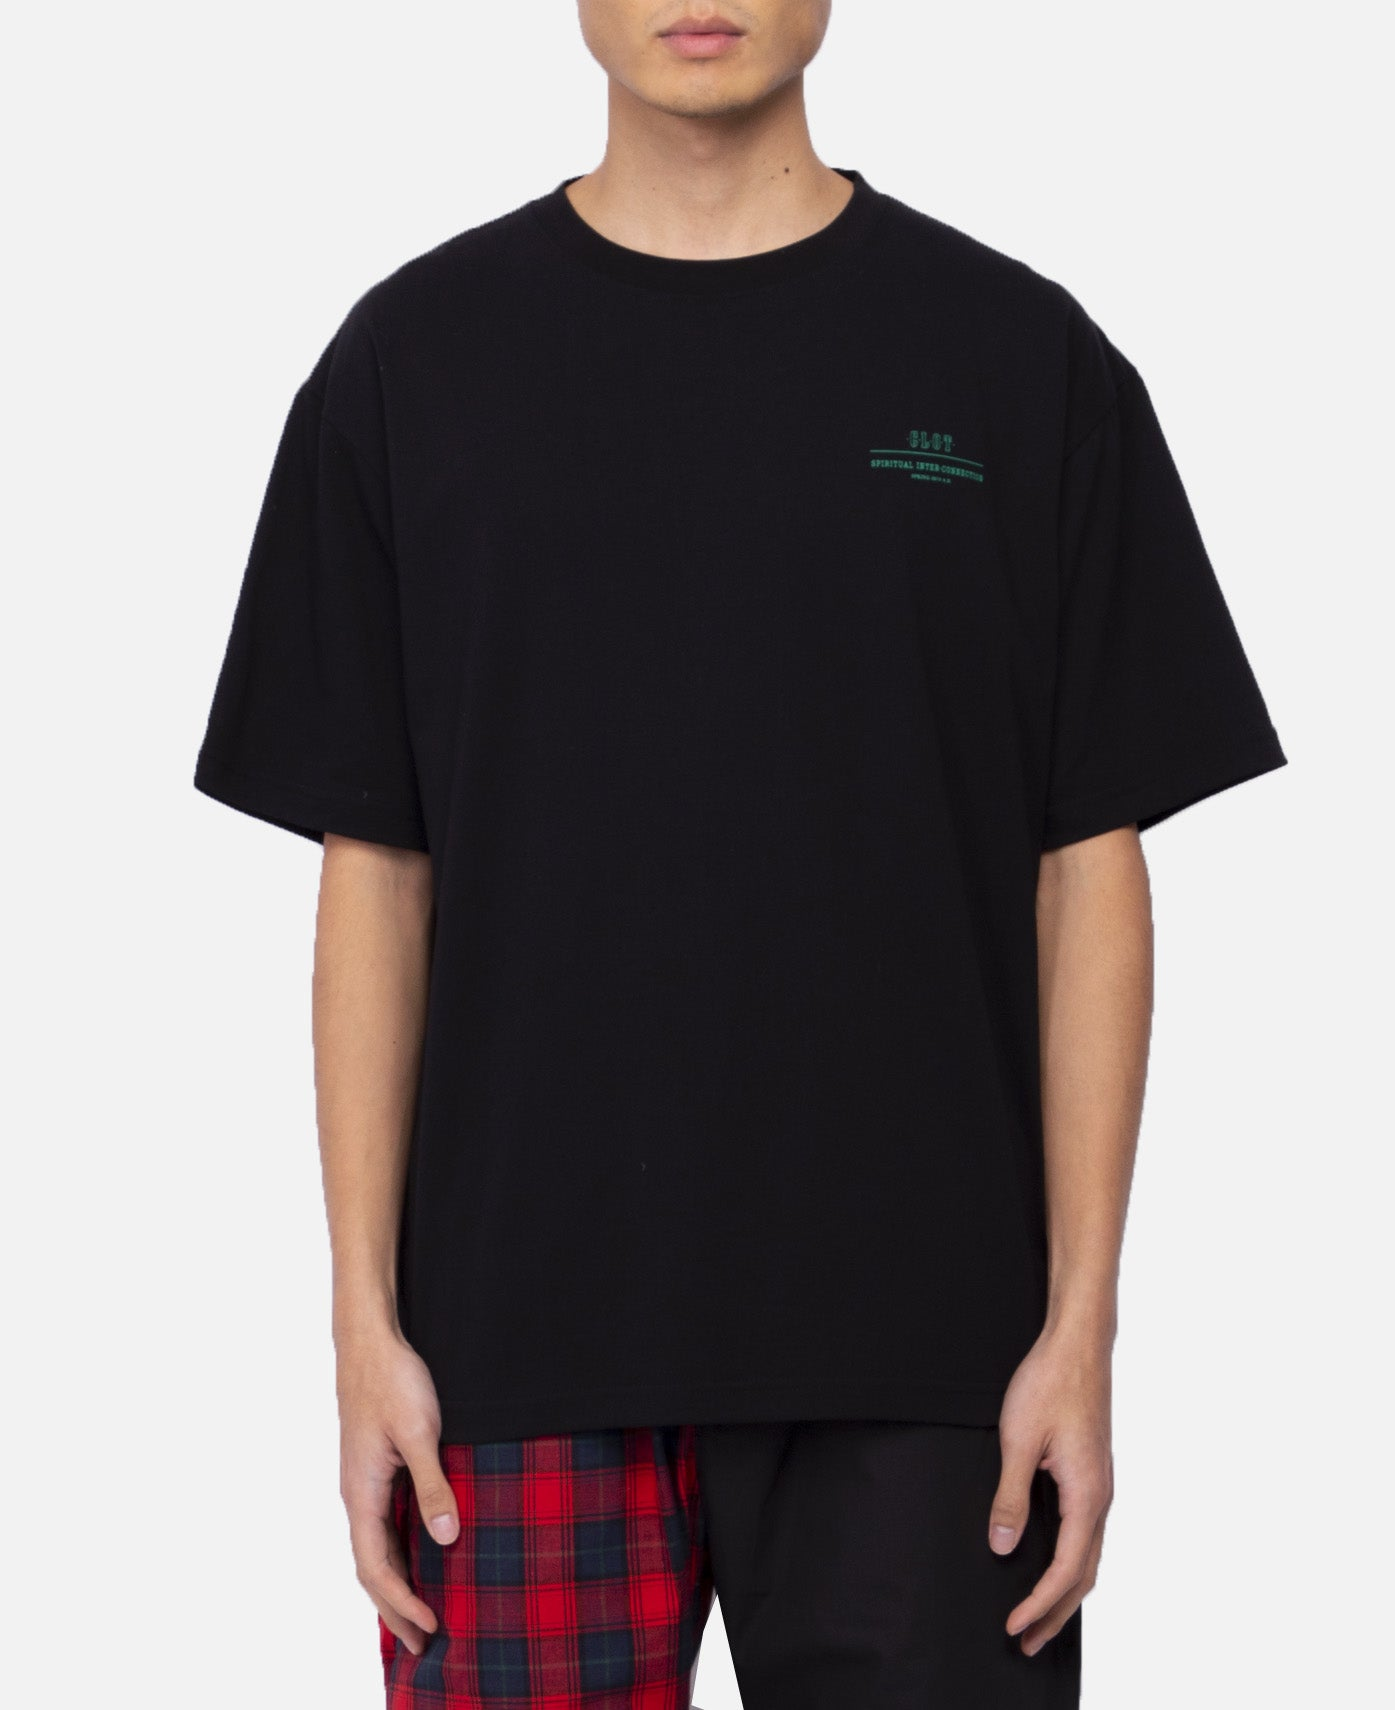 Interplay T-Shirt (Black)